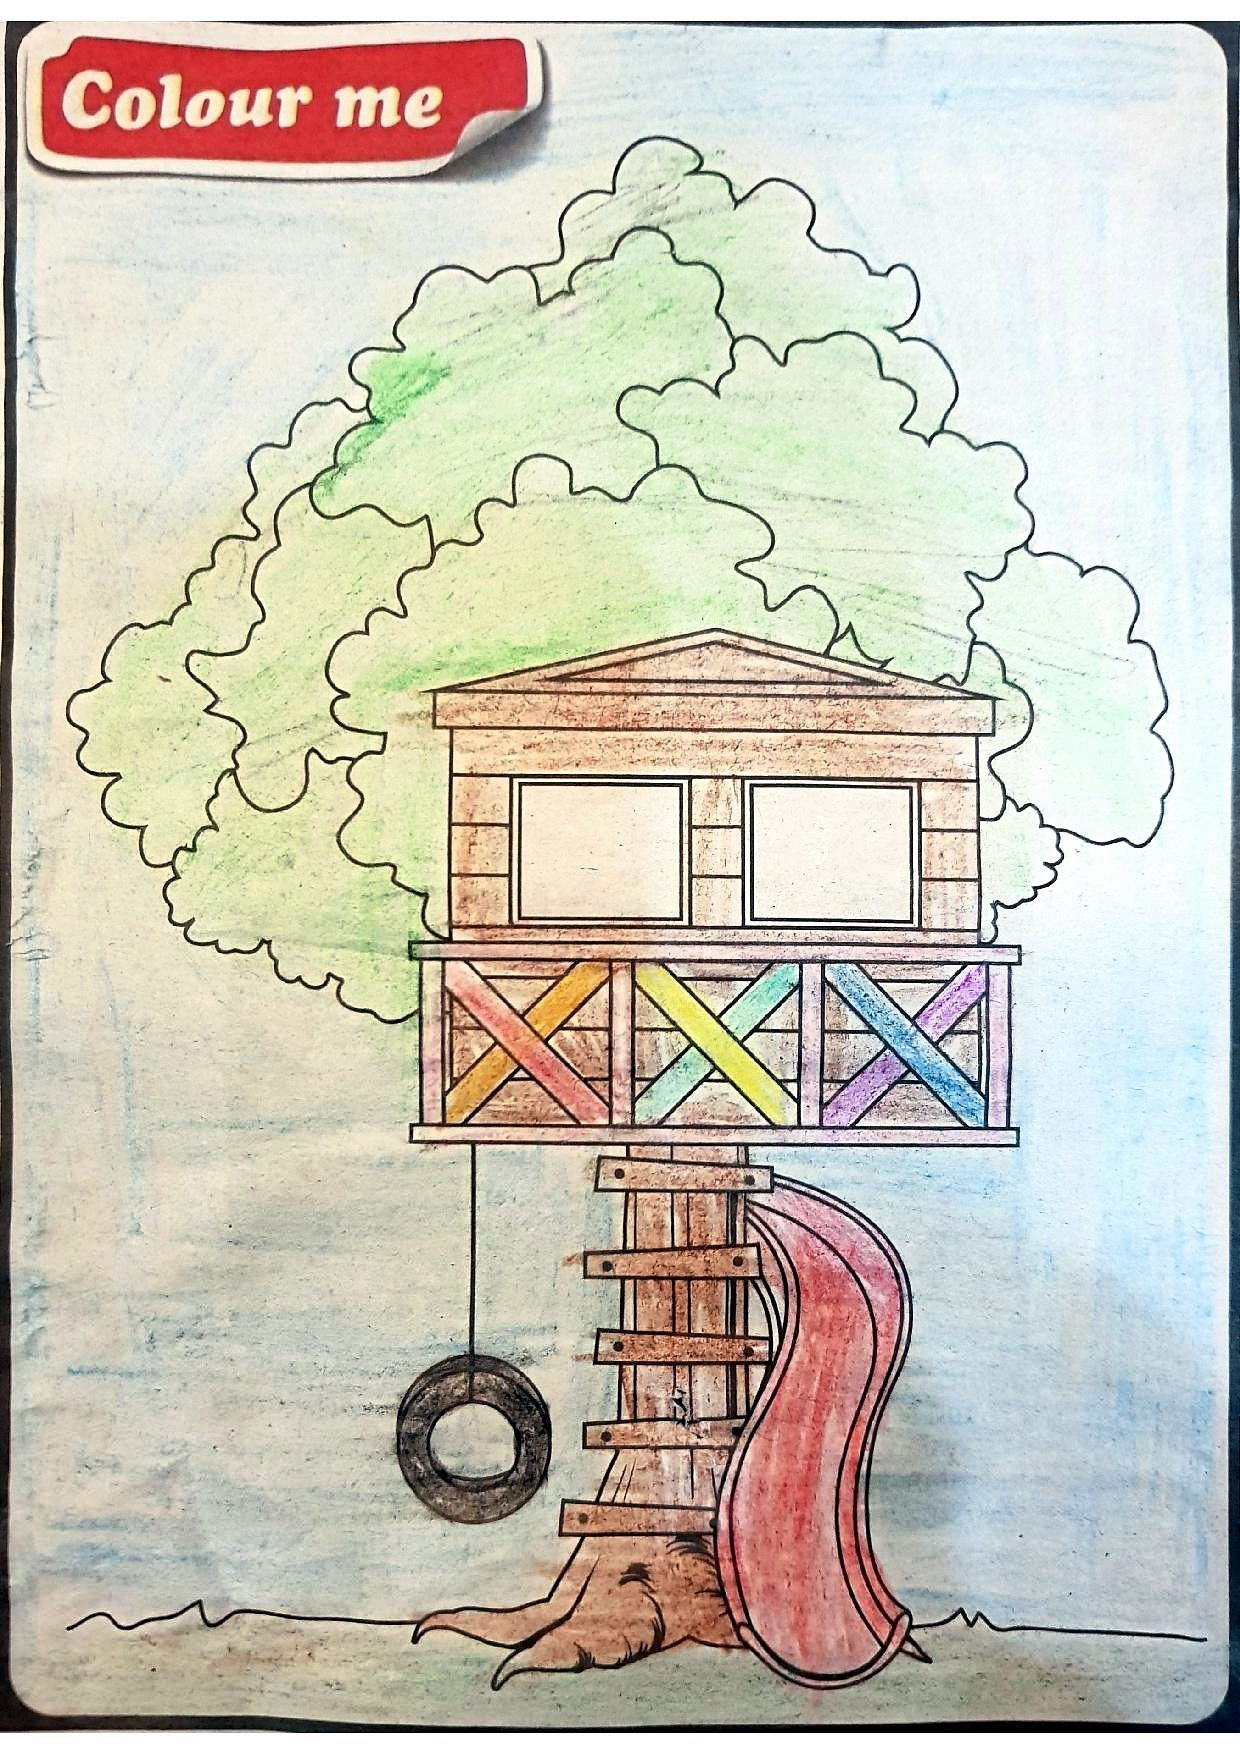 Starchild Readers Show Their Creativity In Drawing Tree Houses The Star